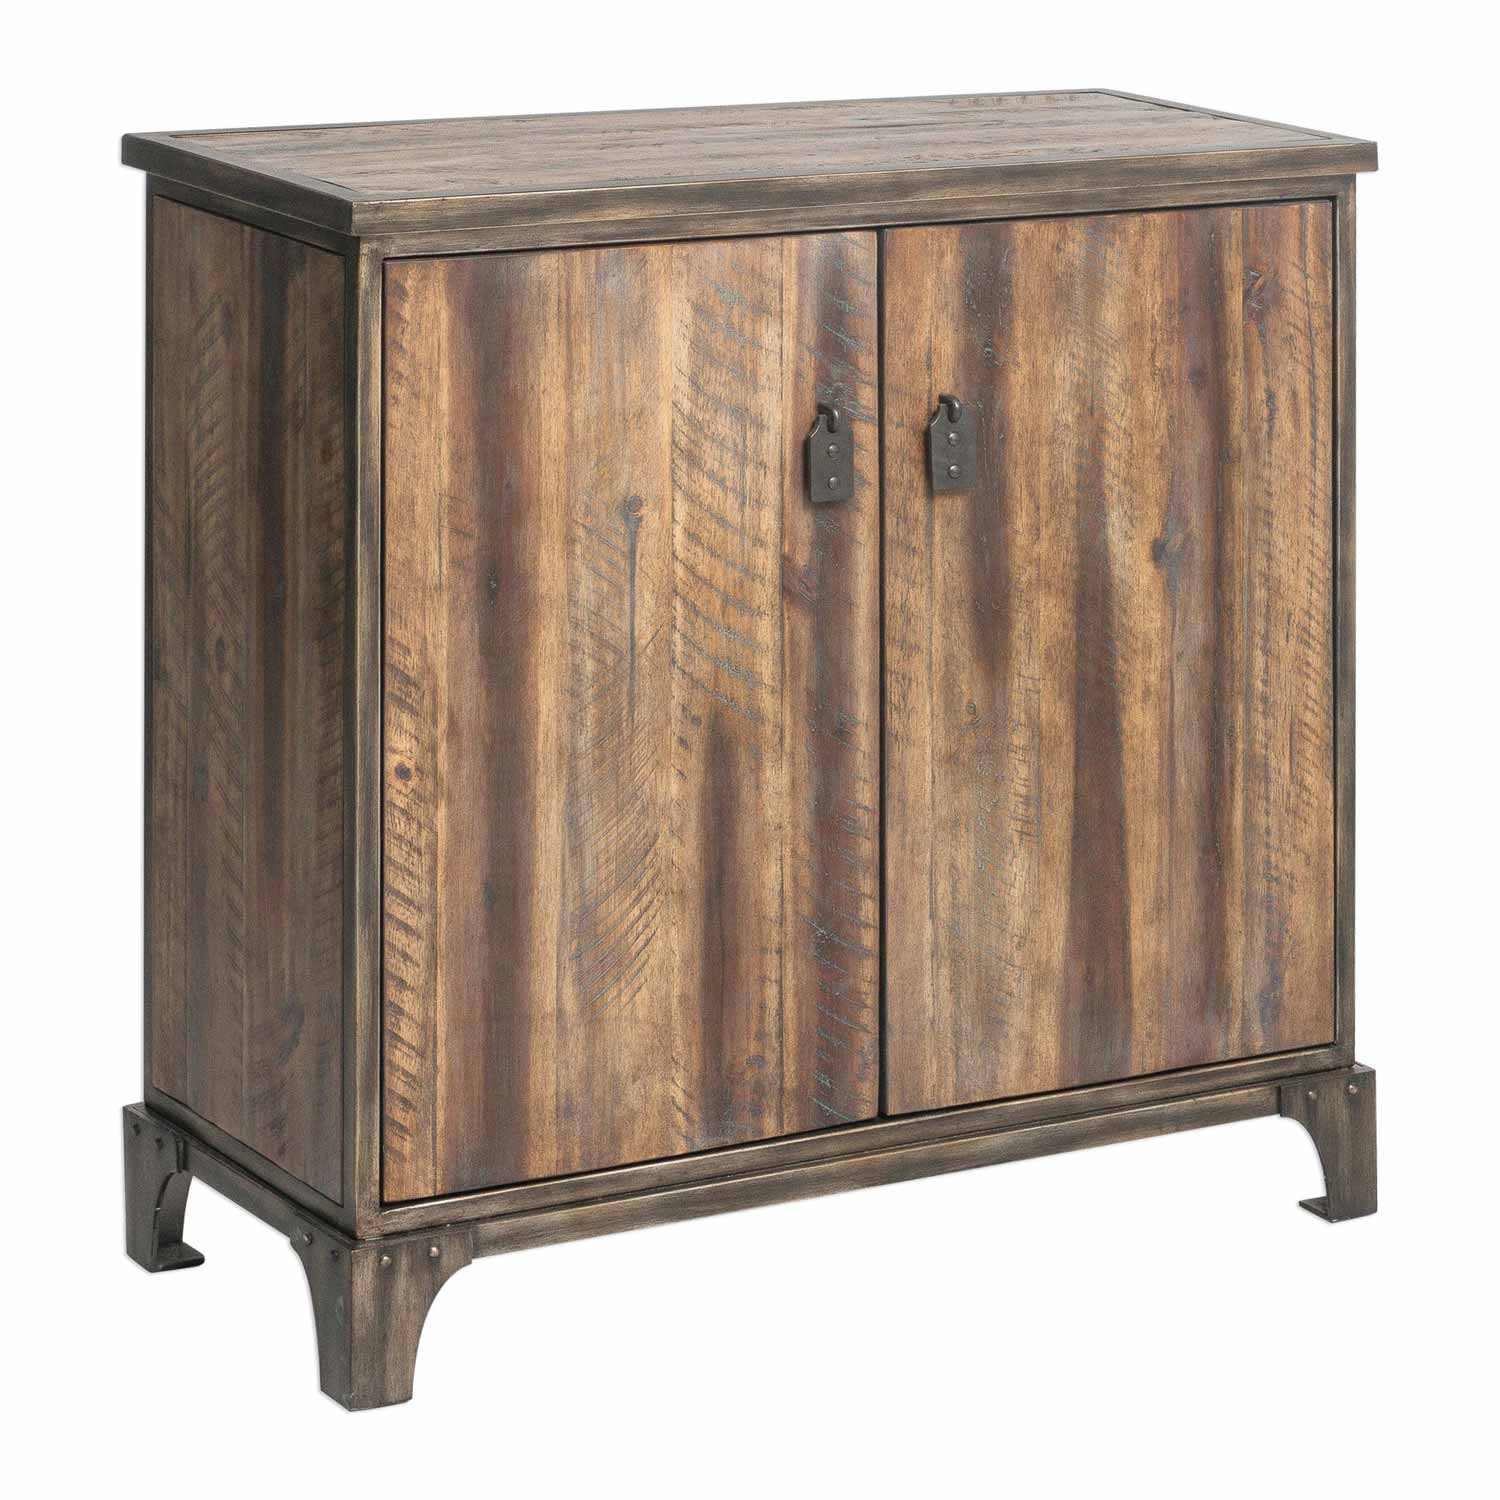 Uttermost Trevin Accent Cabinet - Rustic